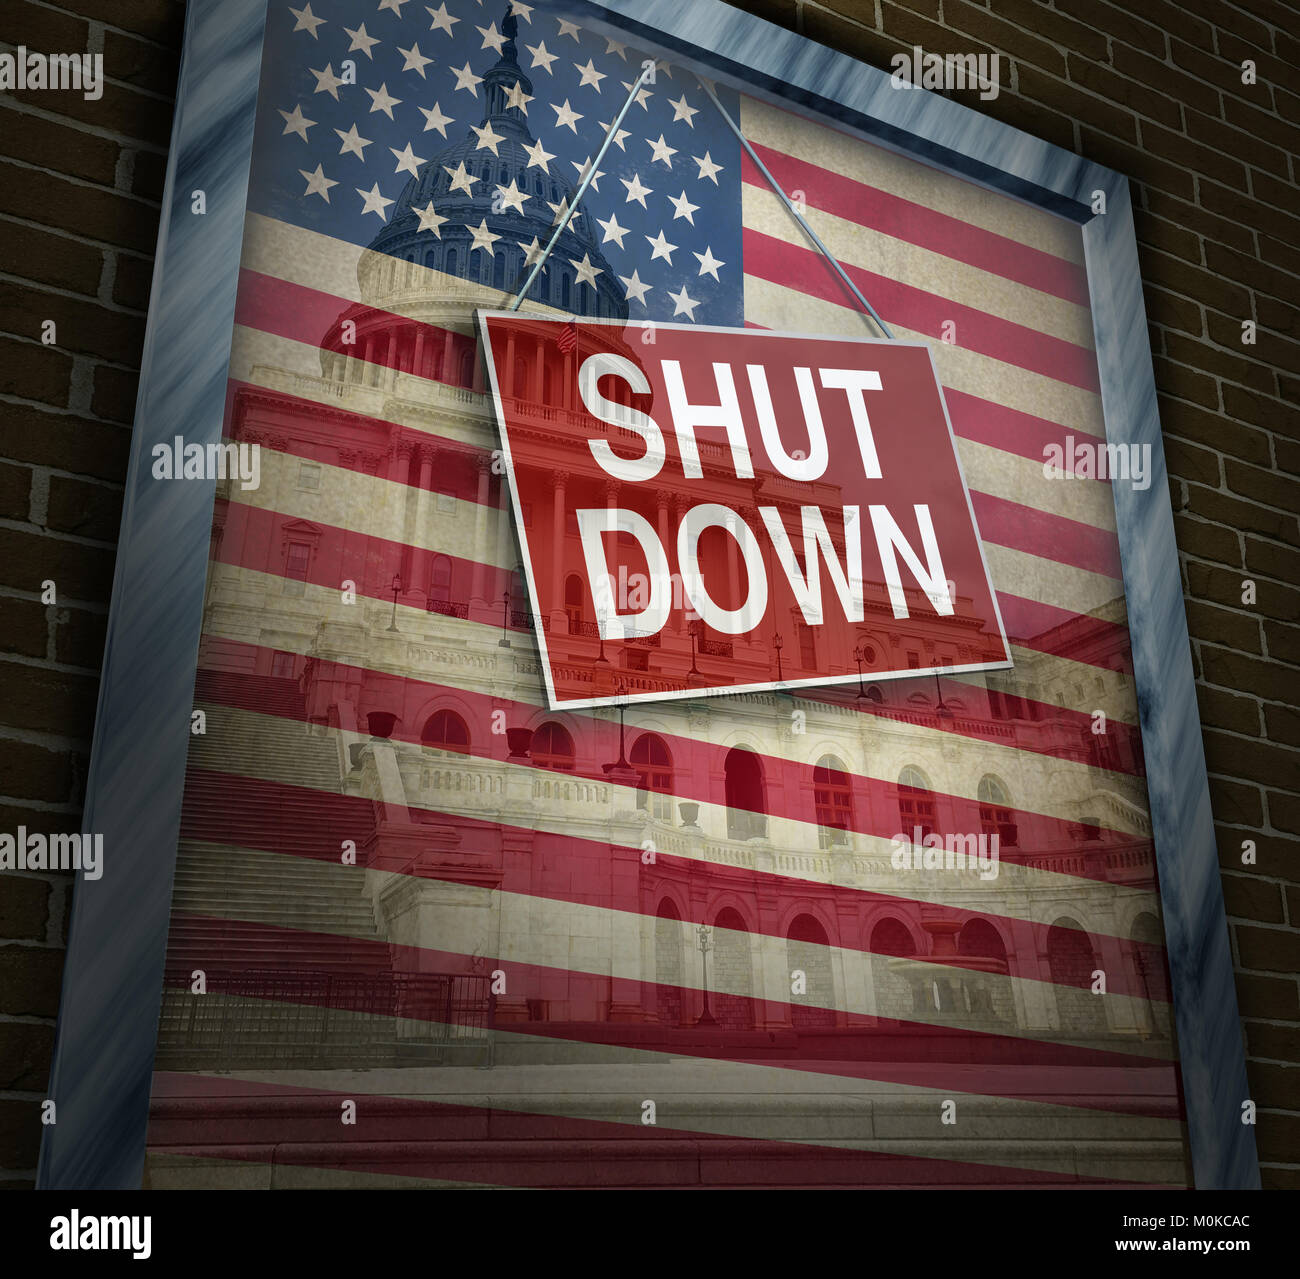 Shutdown government and United States federal system shuts down with a disagreement with republicans and democrats - Stock Image